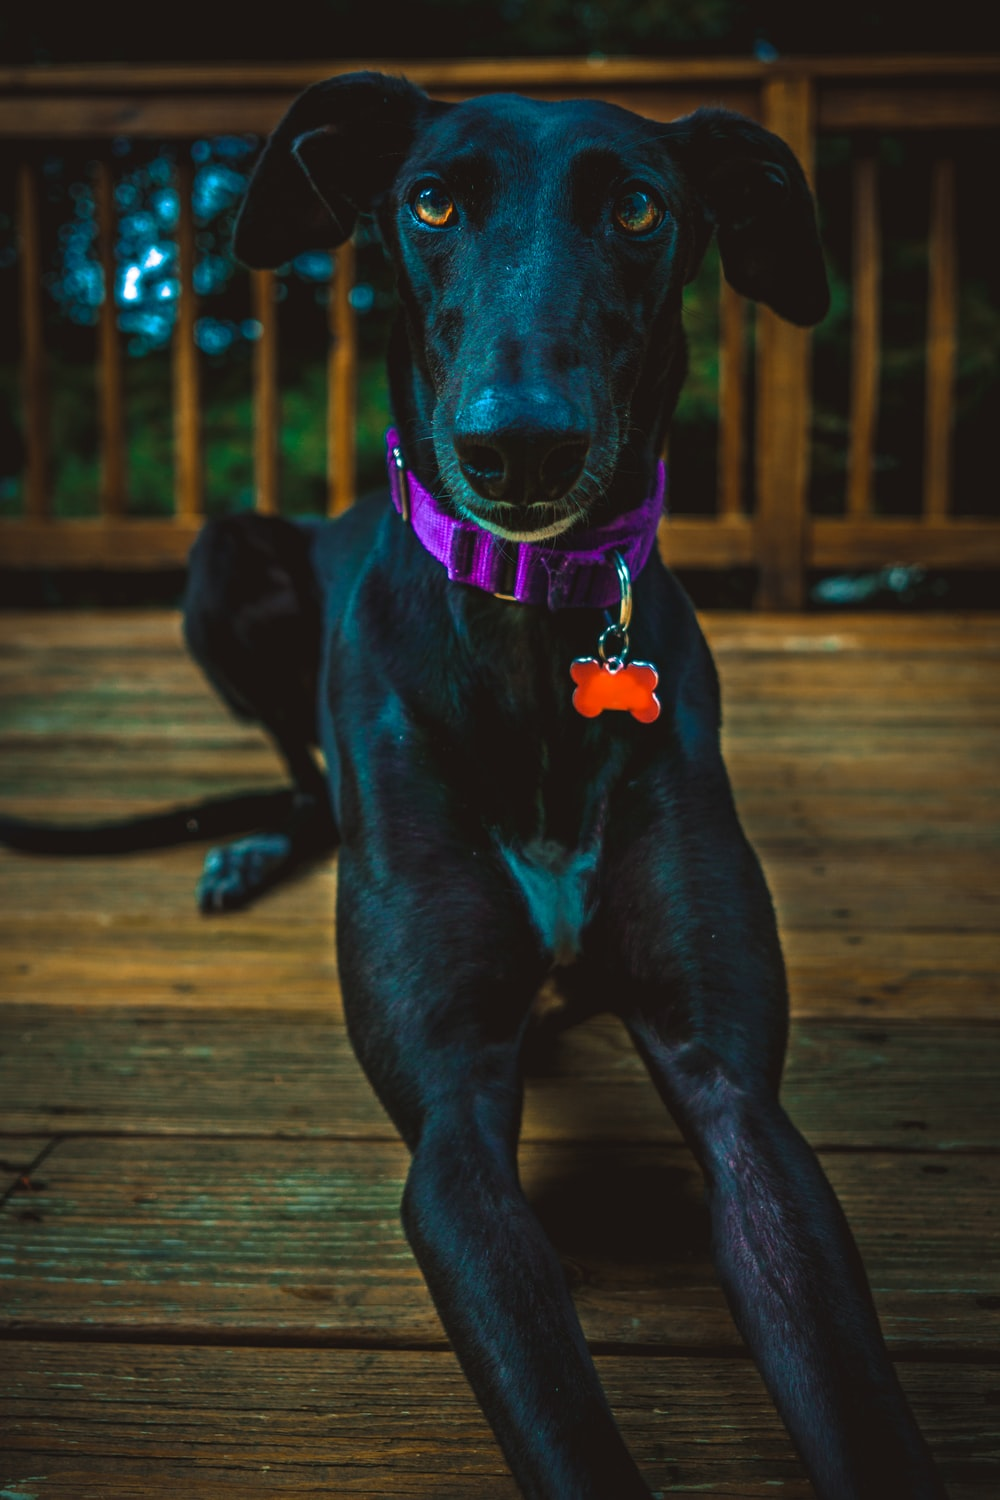 black Labrador dog laying on wooden surface